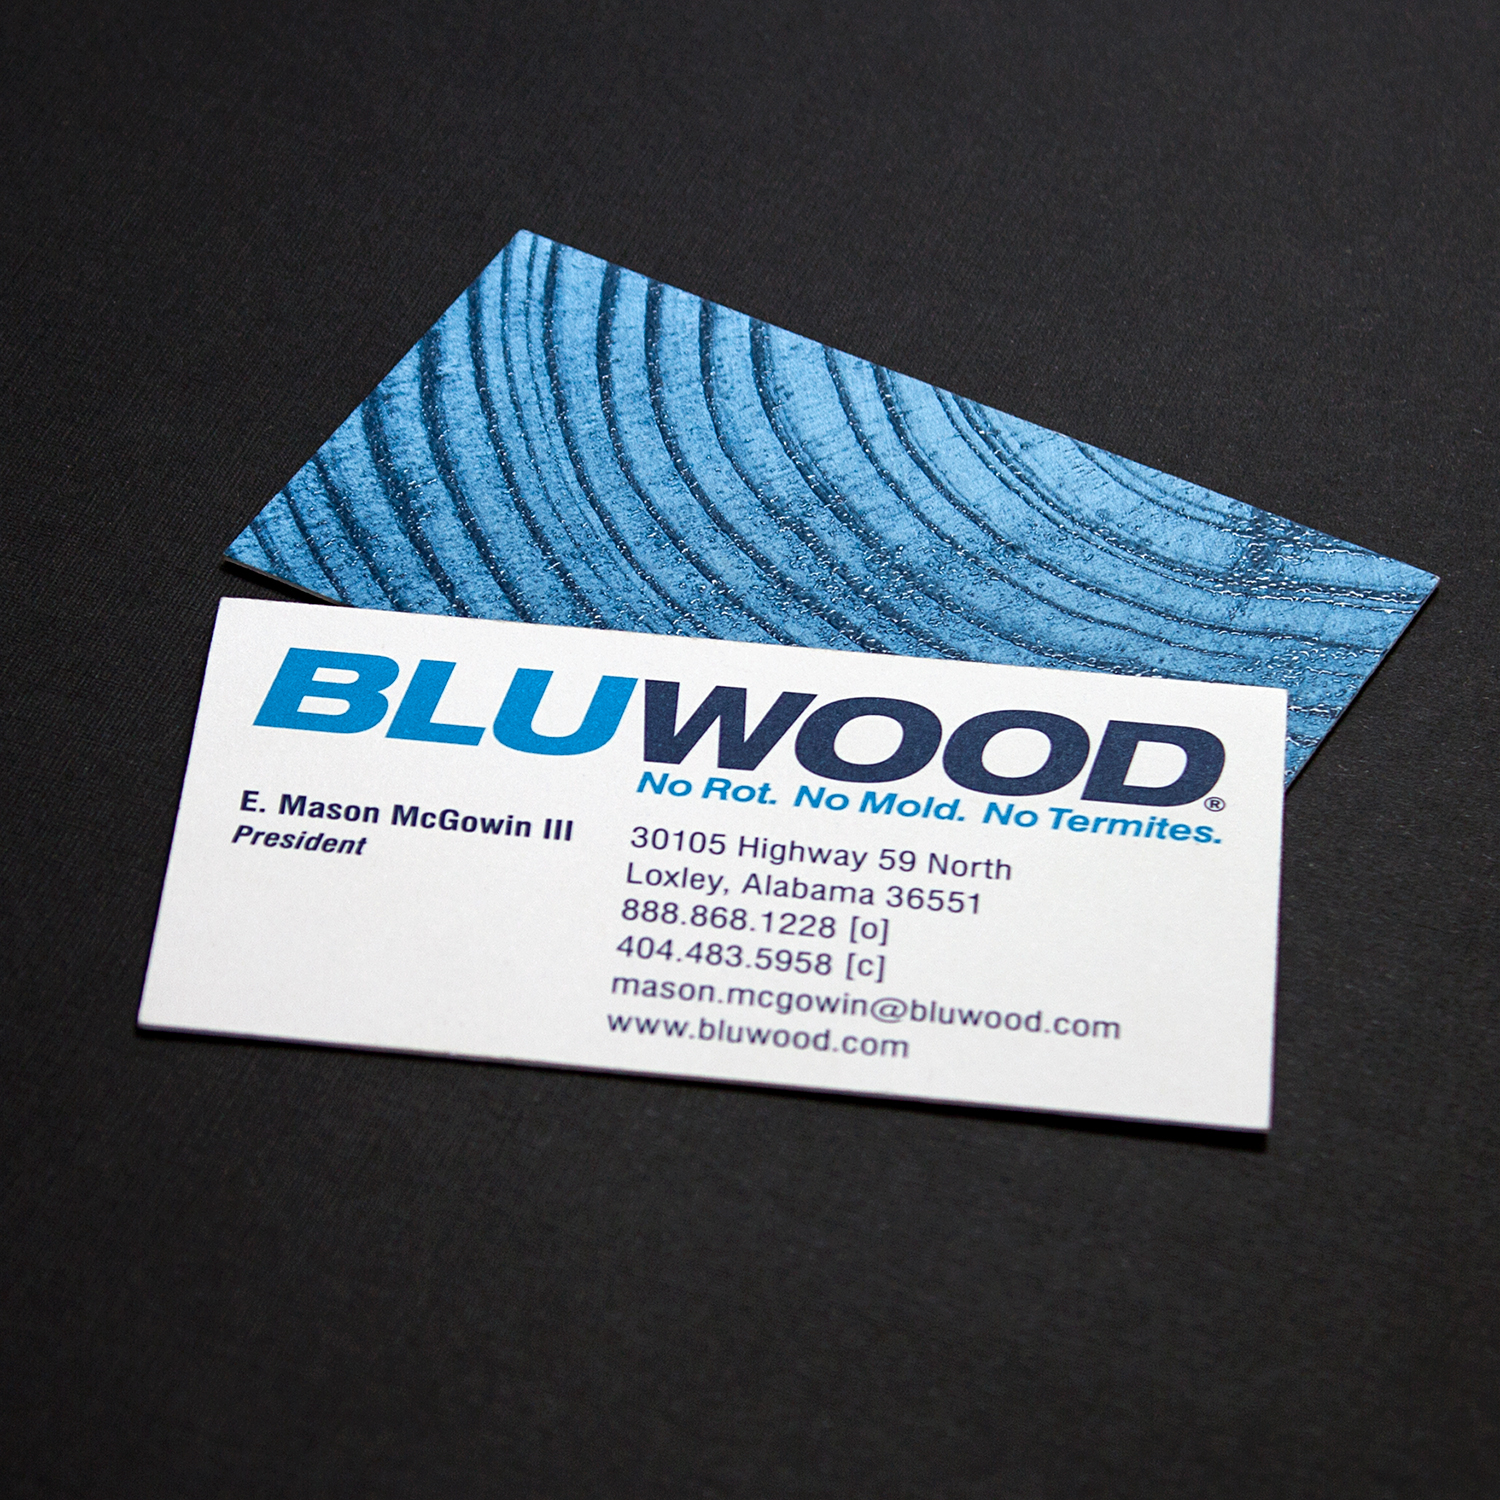 PRINT DESIGN - BluWood | business cards - ©UnParalleled, LLC dba UP-Ideas / Roger Sawhill / Mark Braught - Atlanta, Georgia | Lawrenceville, Georgia | Commerce, Georgia